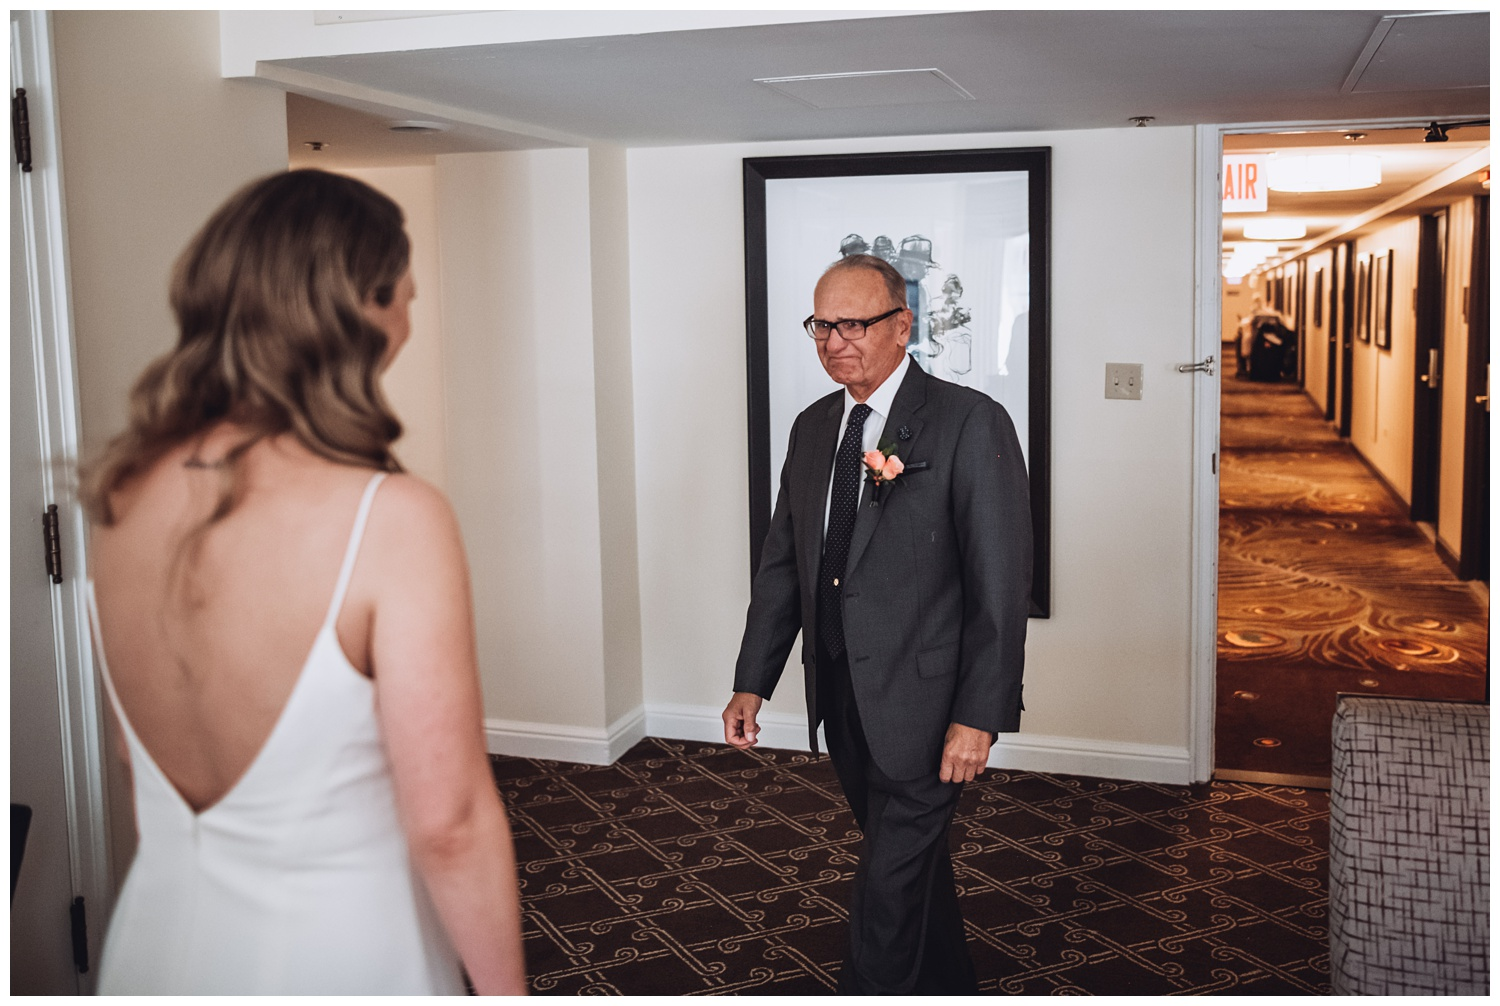 Palmer house Chicago Wedding Photographer - The Adamkovi, father of the bride, emotional first look